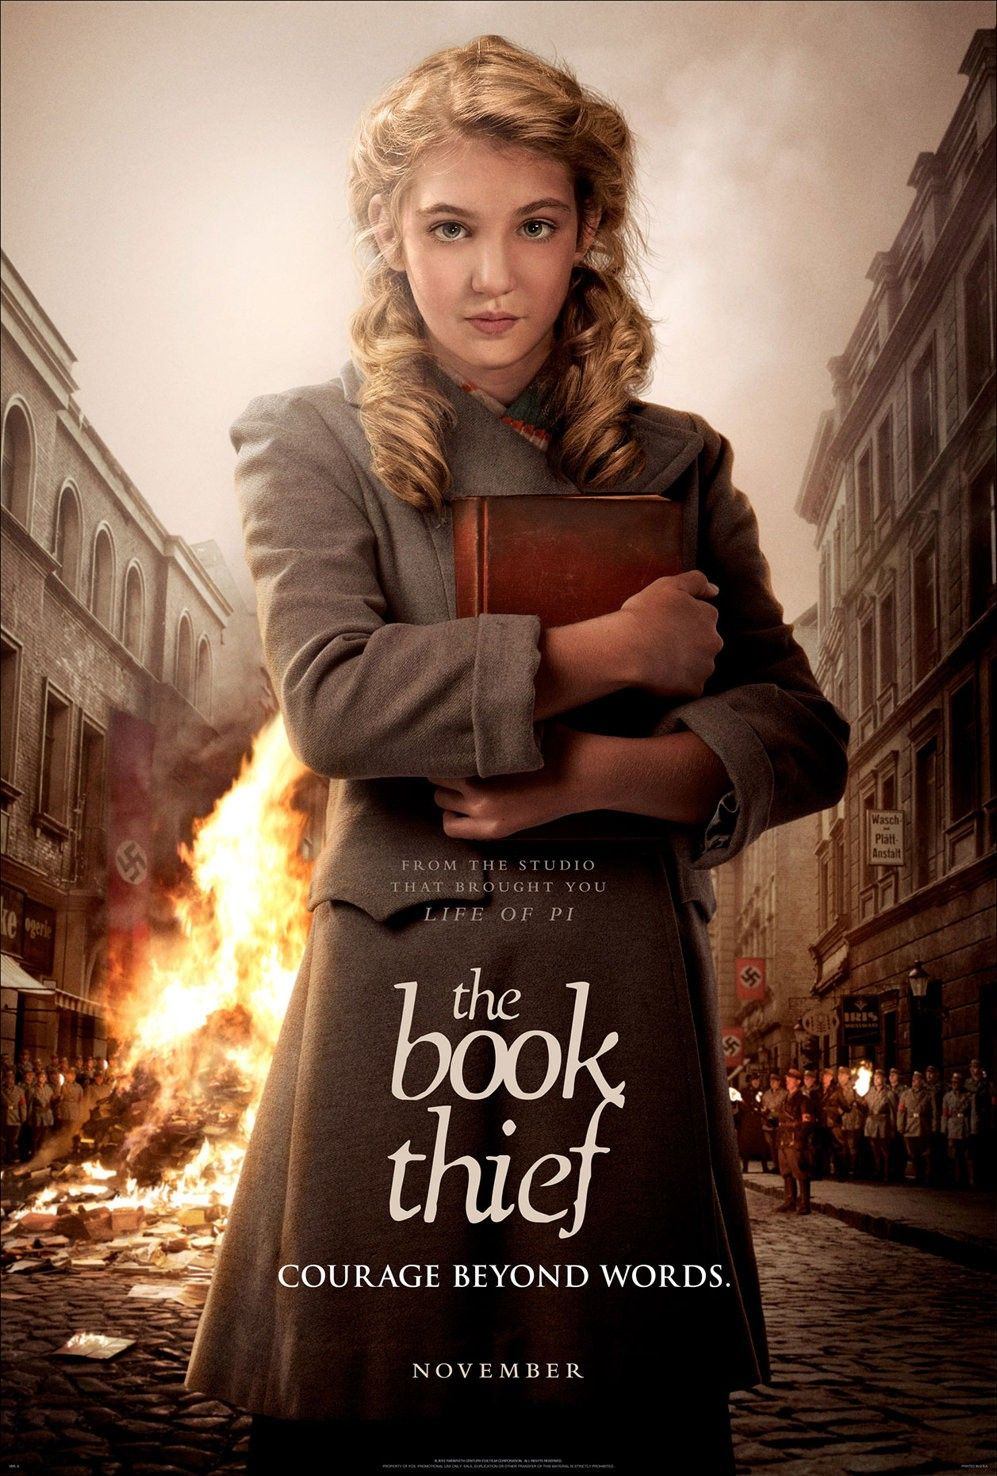 book theif The book thief by markus zusak is a novel of cruelty, poverty, and hope liesel meminger is a young girl who has been placed in foster care by her mother liesel's brother dies en route to their new home and this leaves liesel traumatized, causing her to have terrible nightmares in the middle of the .